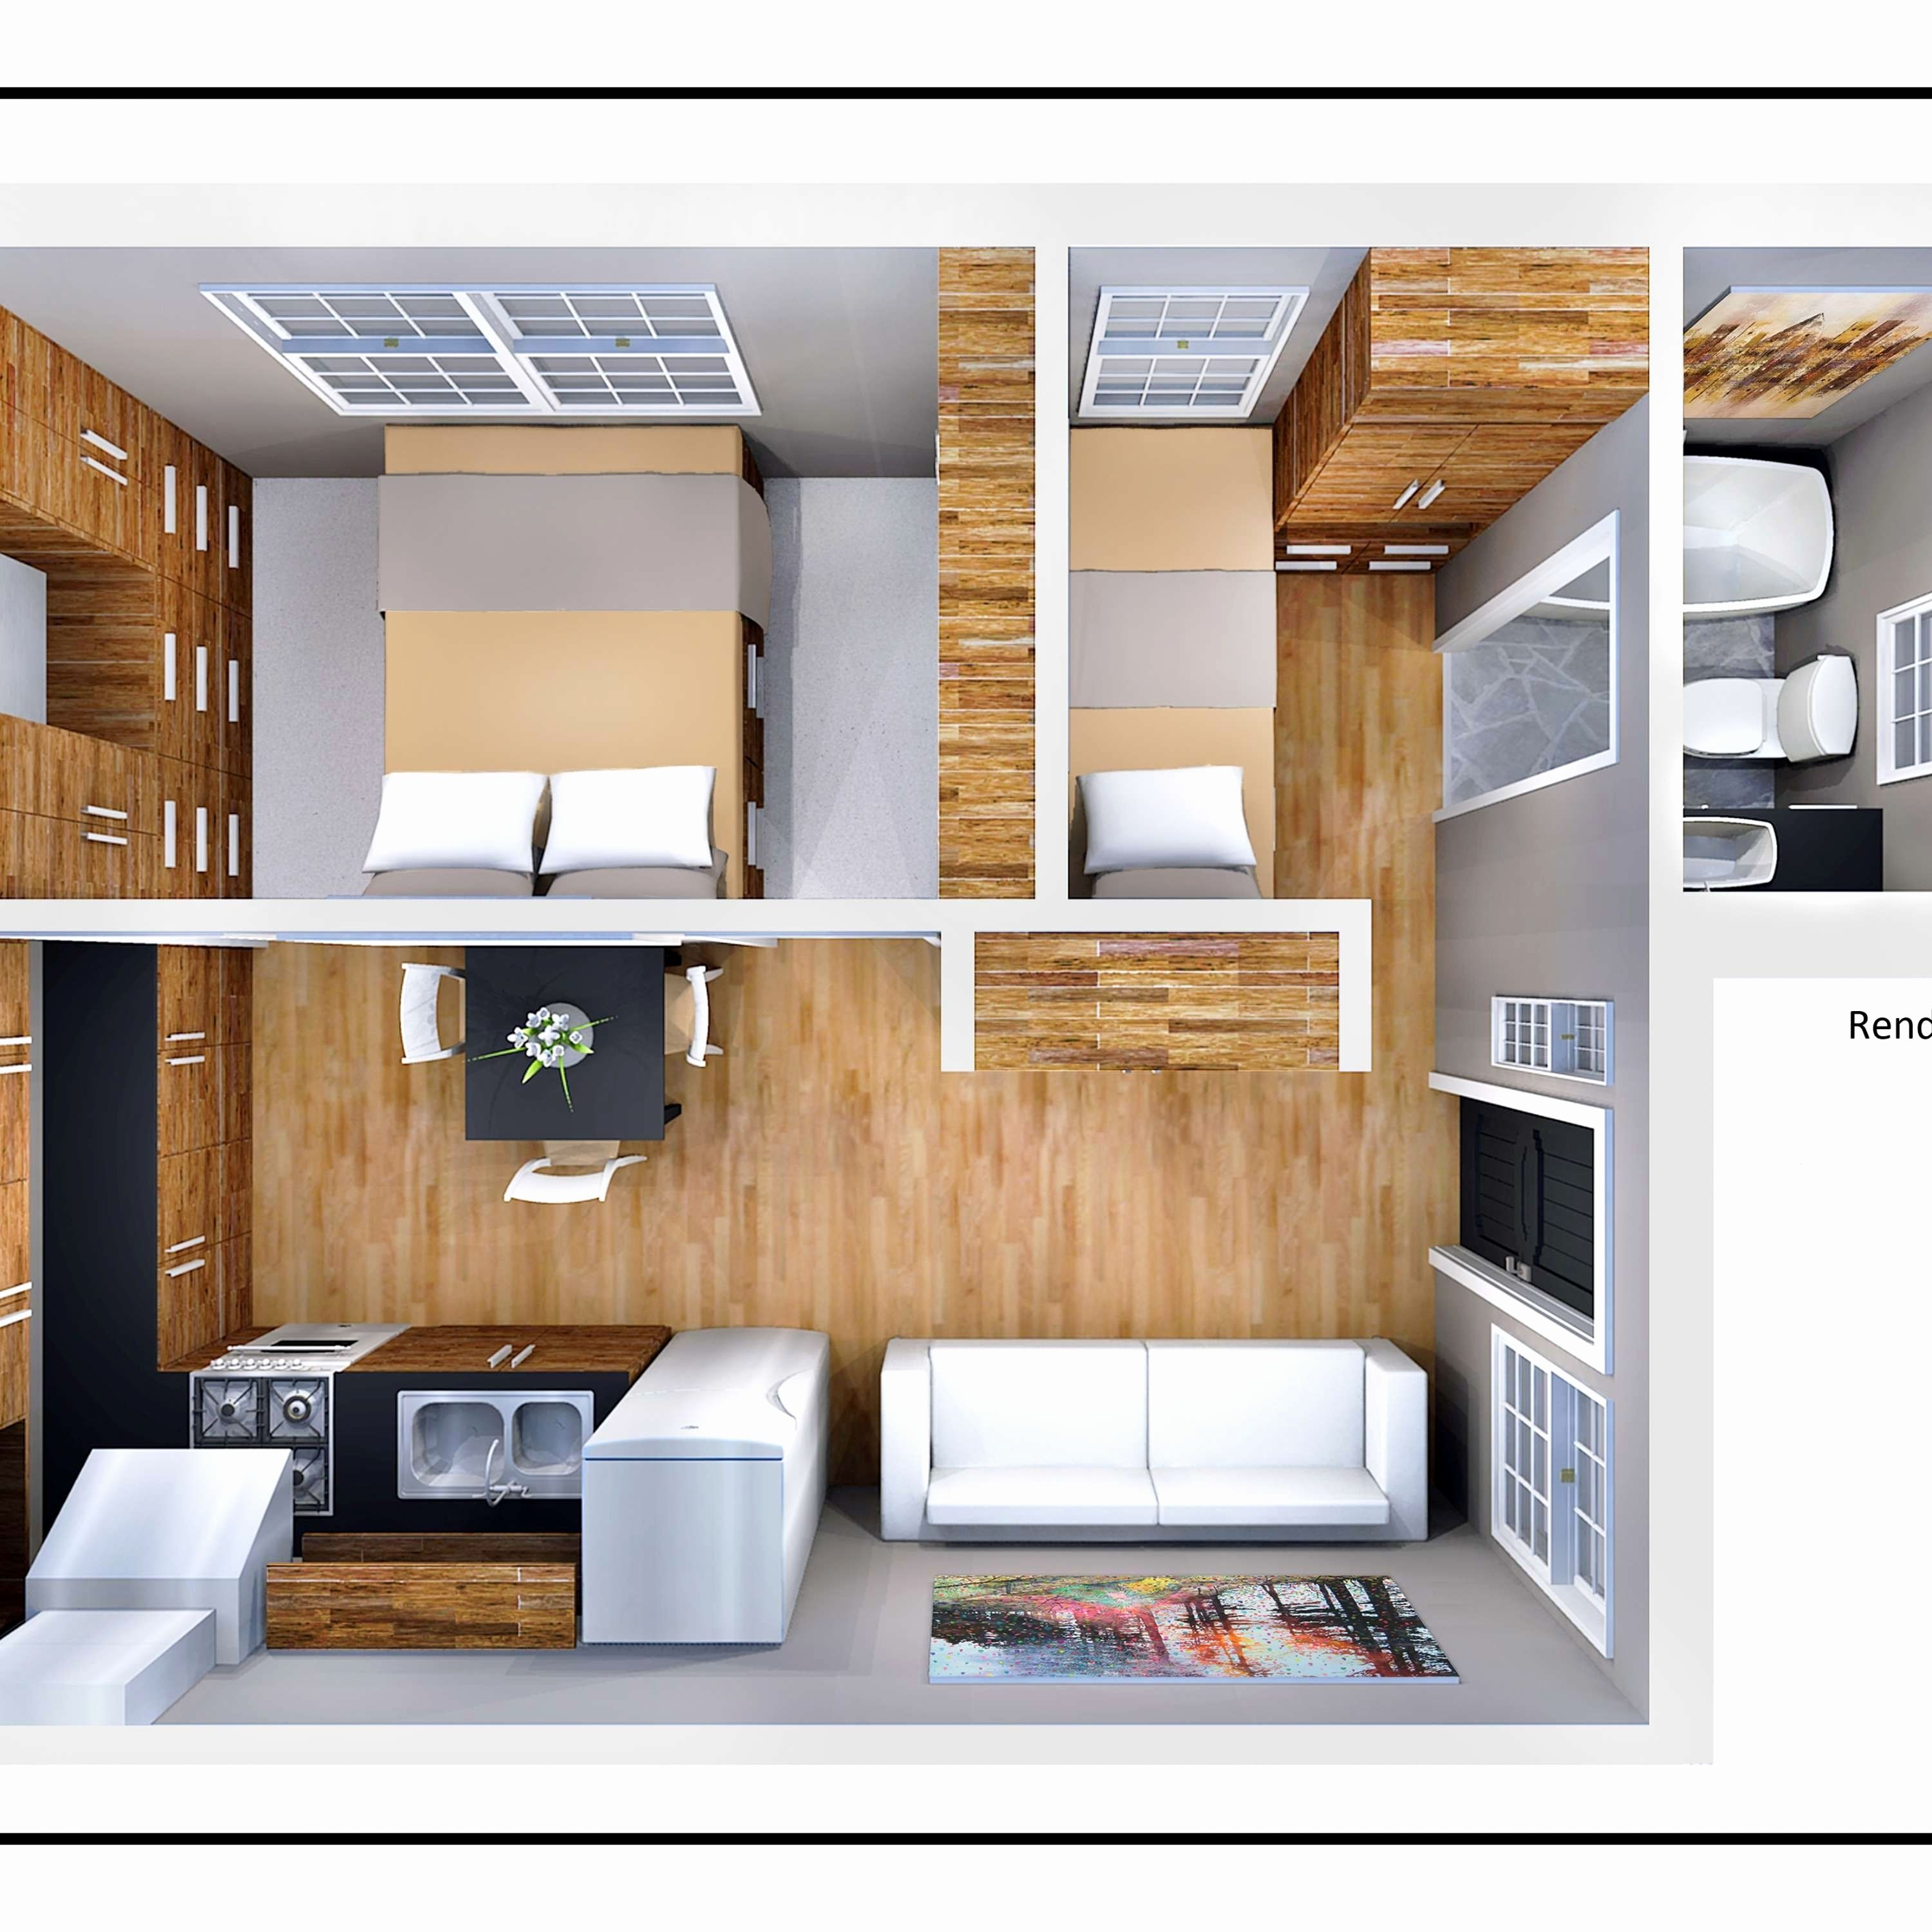 Image Result For Under 500 Sq Ft House Plans Studio Apartment Floor Plans Small House Design Small House Kits